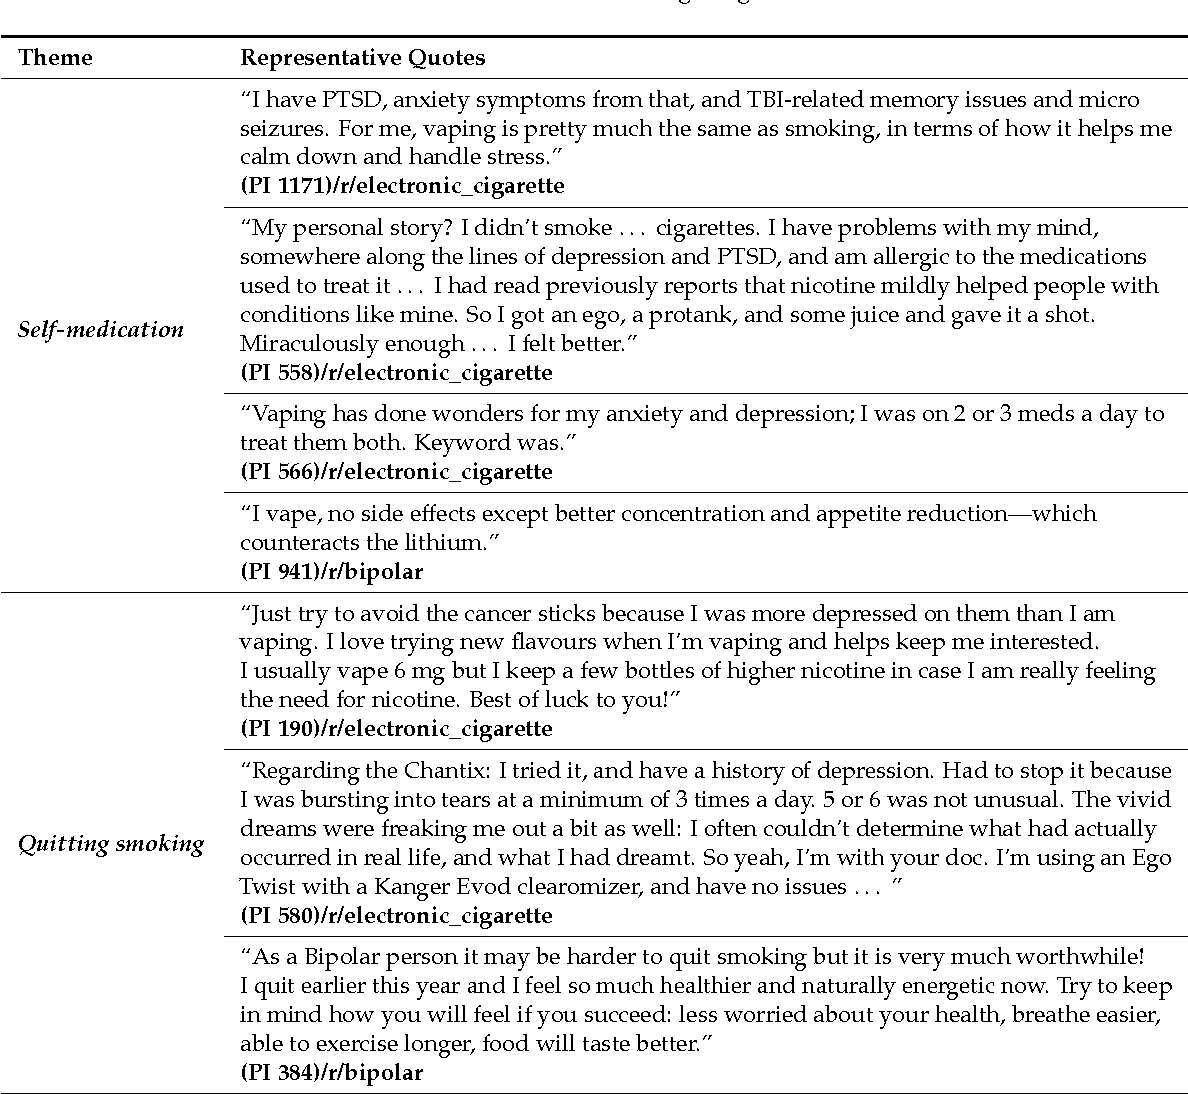 Table 2 from Motivations and Limitations Associated with Vaping